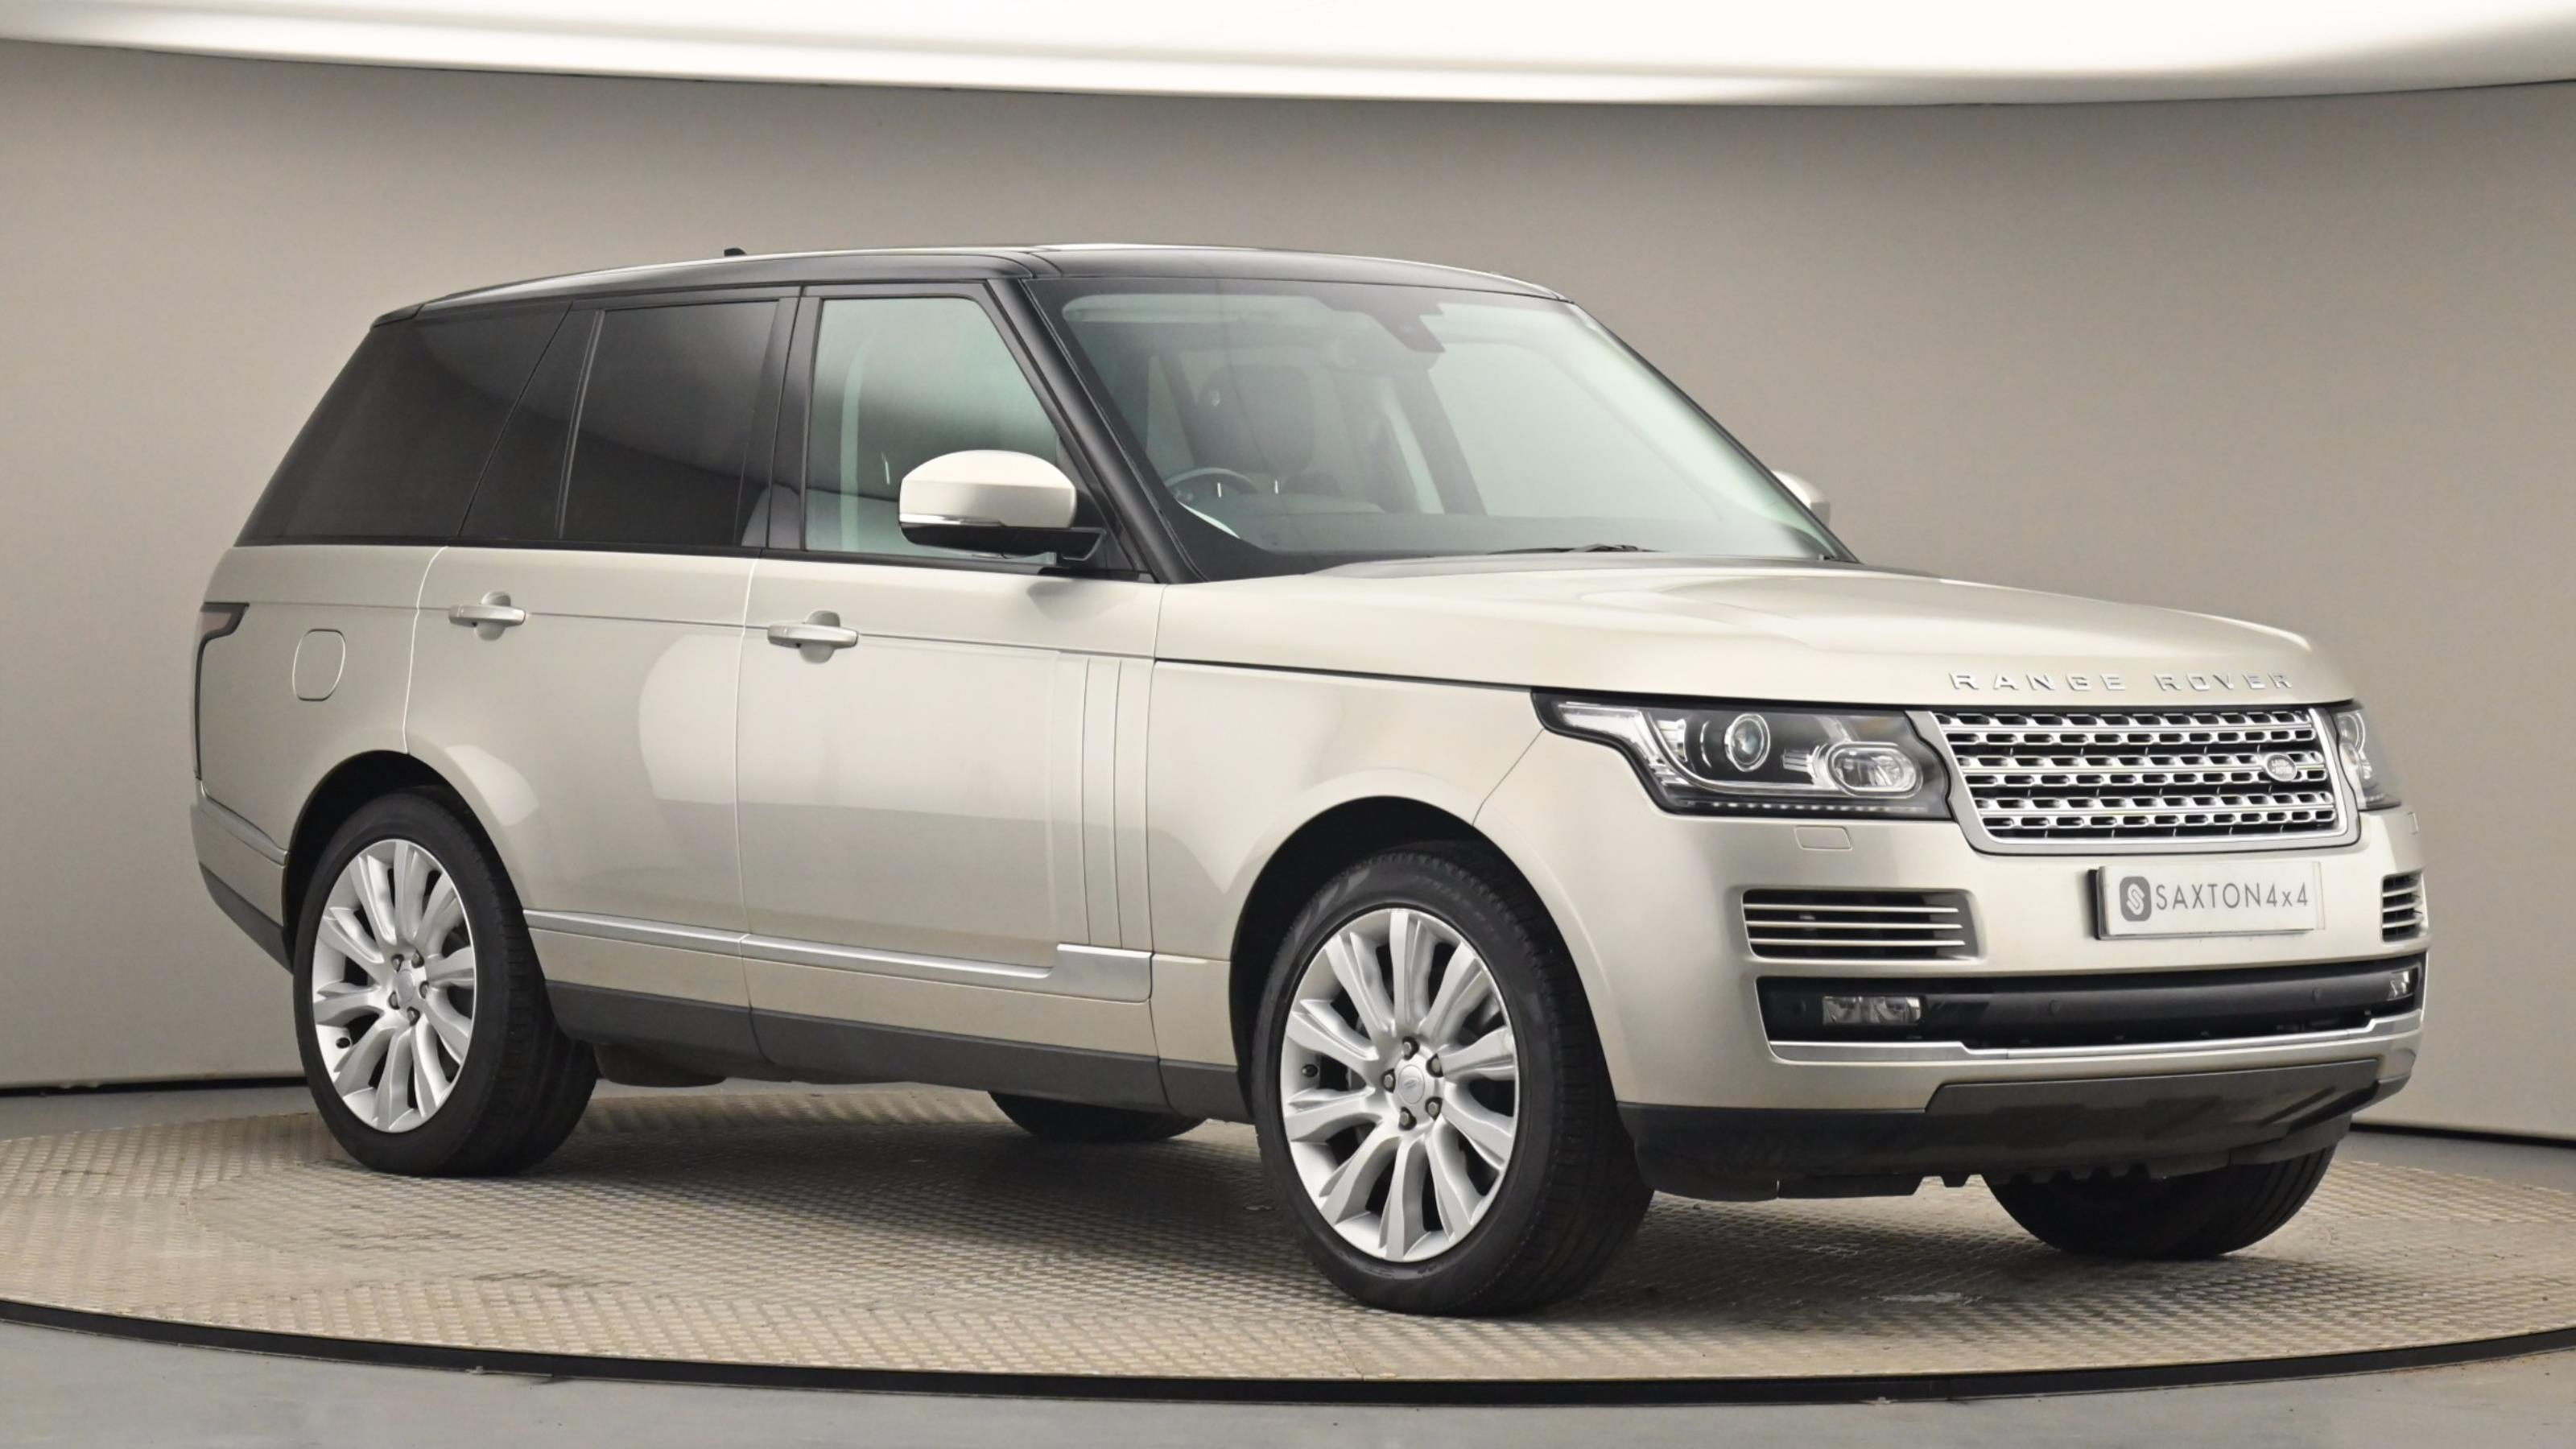 Used 2015 Land Rover RANGE ROVER 4.4 SDV8 Vogue 4dr Auto at Saxton4x4